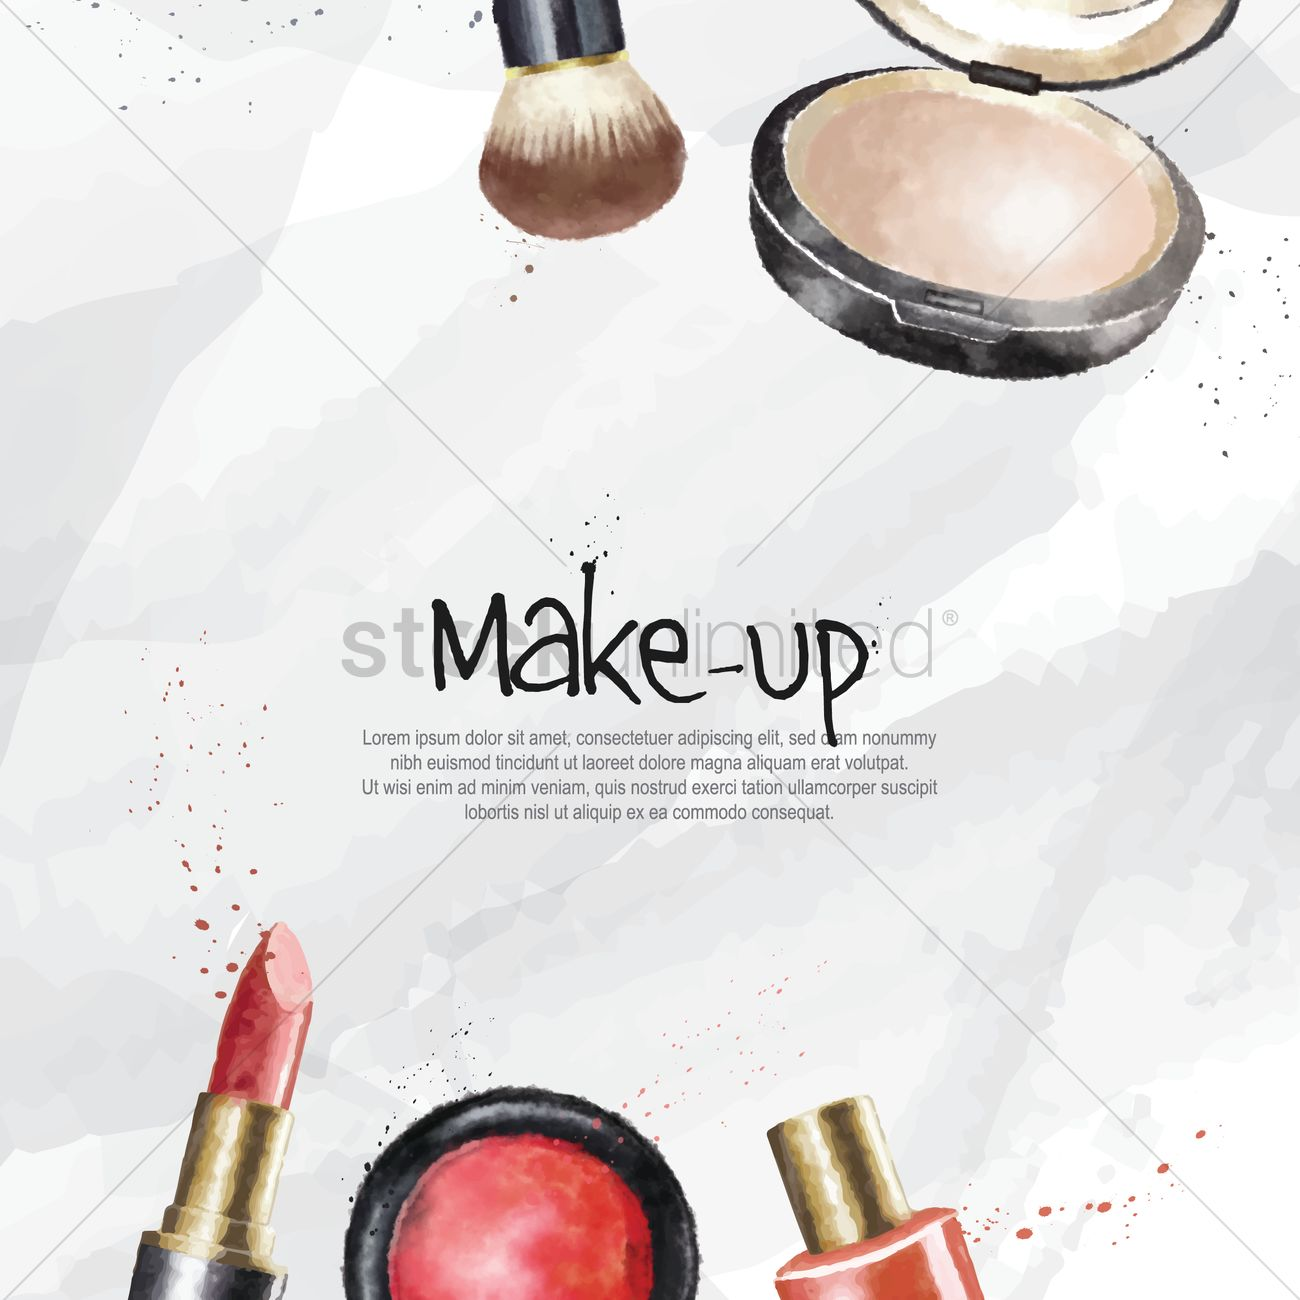 make up cosmetics wallpaper vector image 1825806